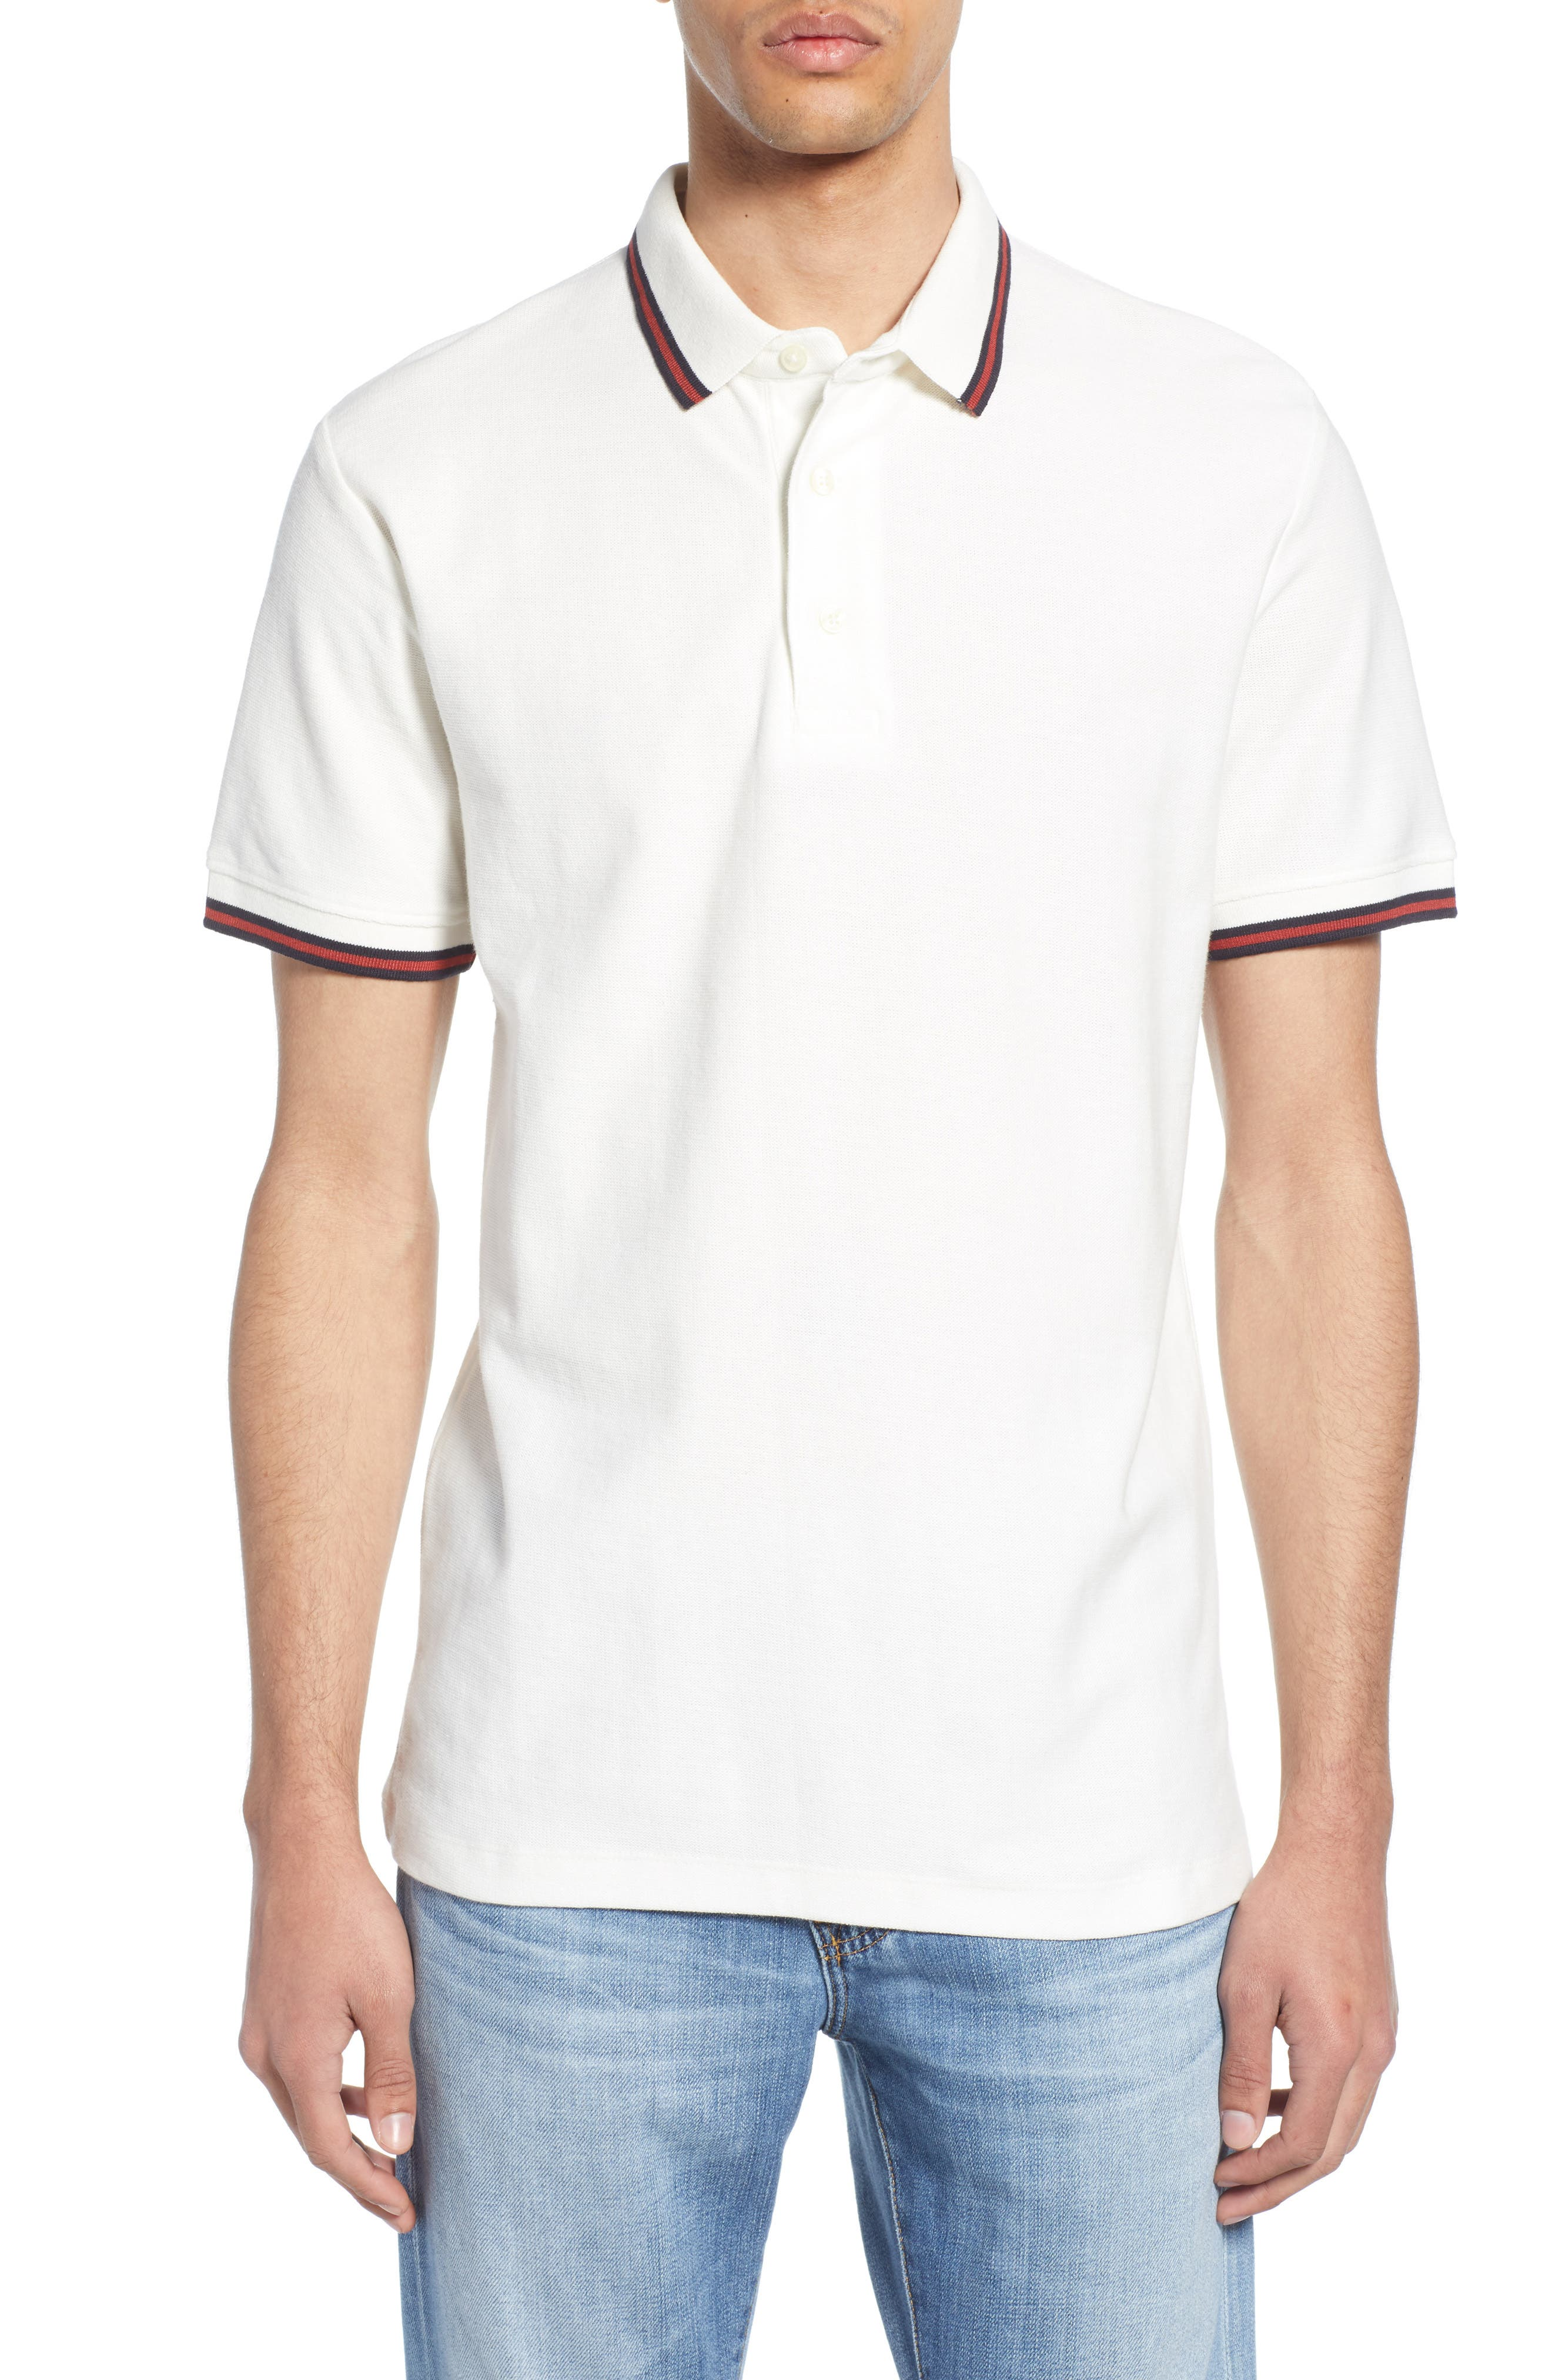 FRENCH CONNECTION, Dobby Jersey Regular Fit Polo, Main thumbnail 1, color, MILK BRICK RED